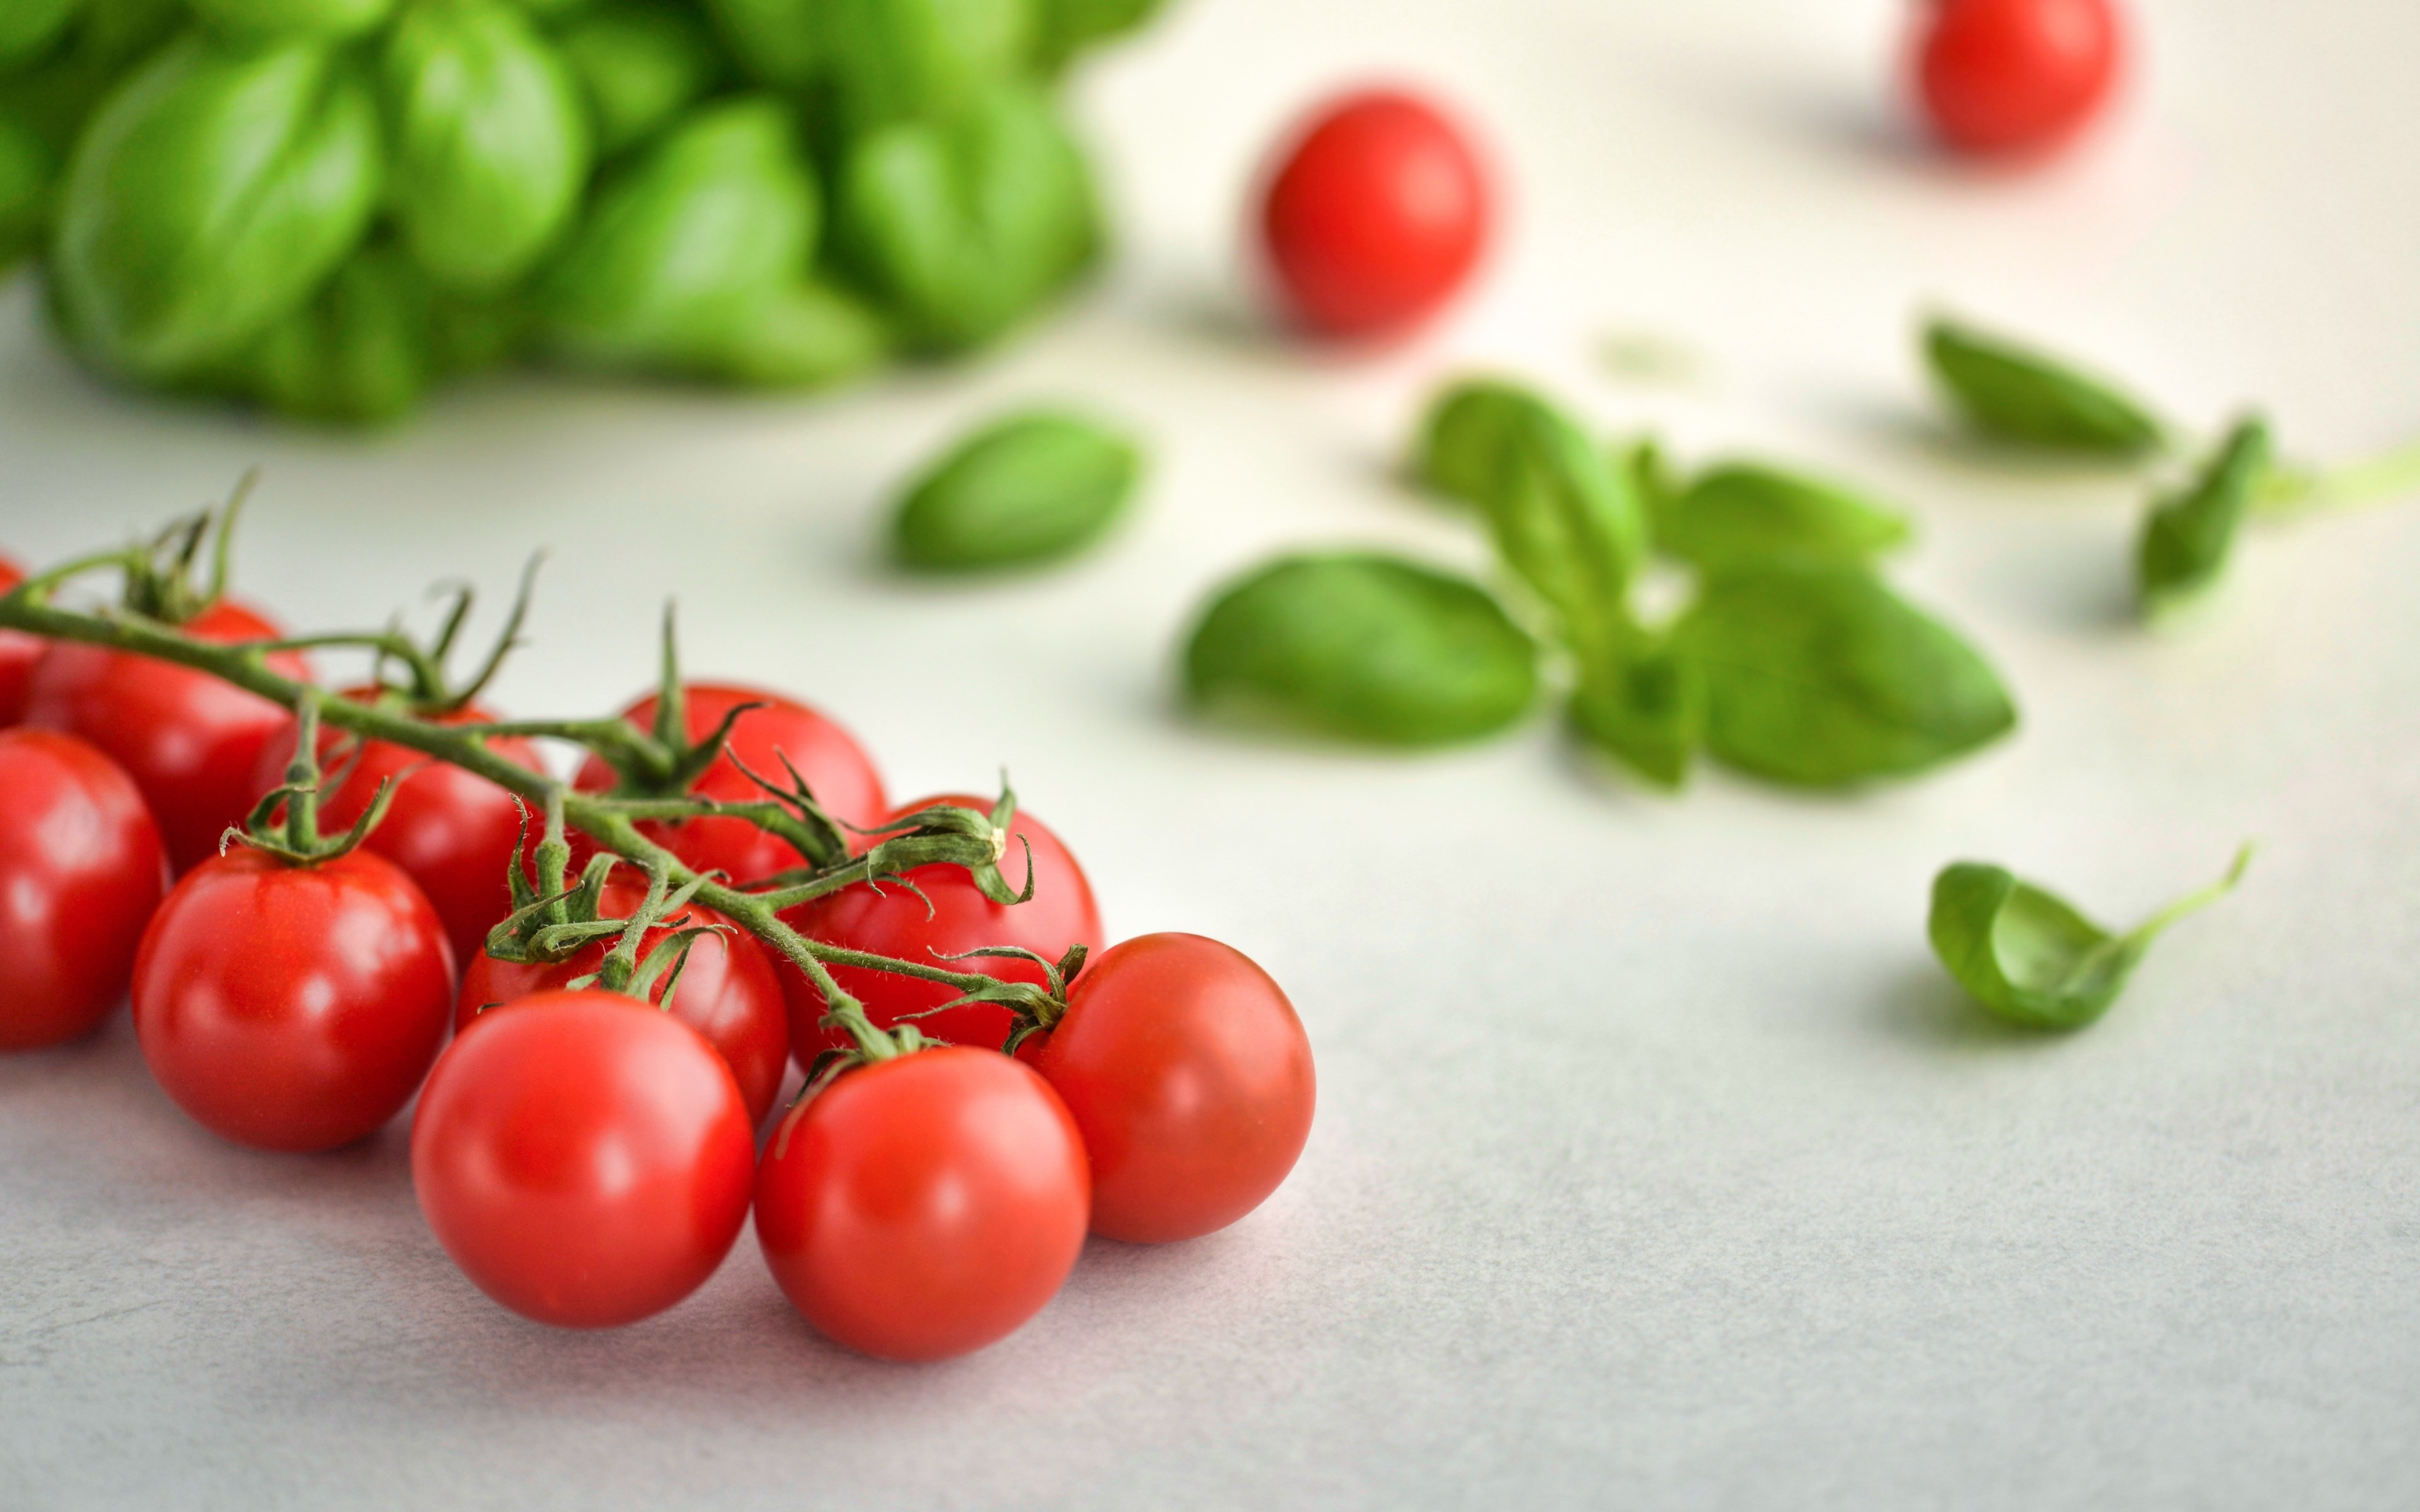 Tomatoes and basil wallpaper 3840x2400